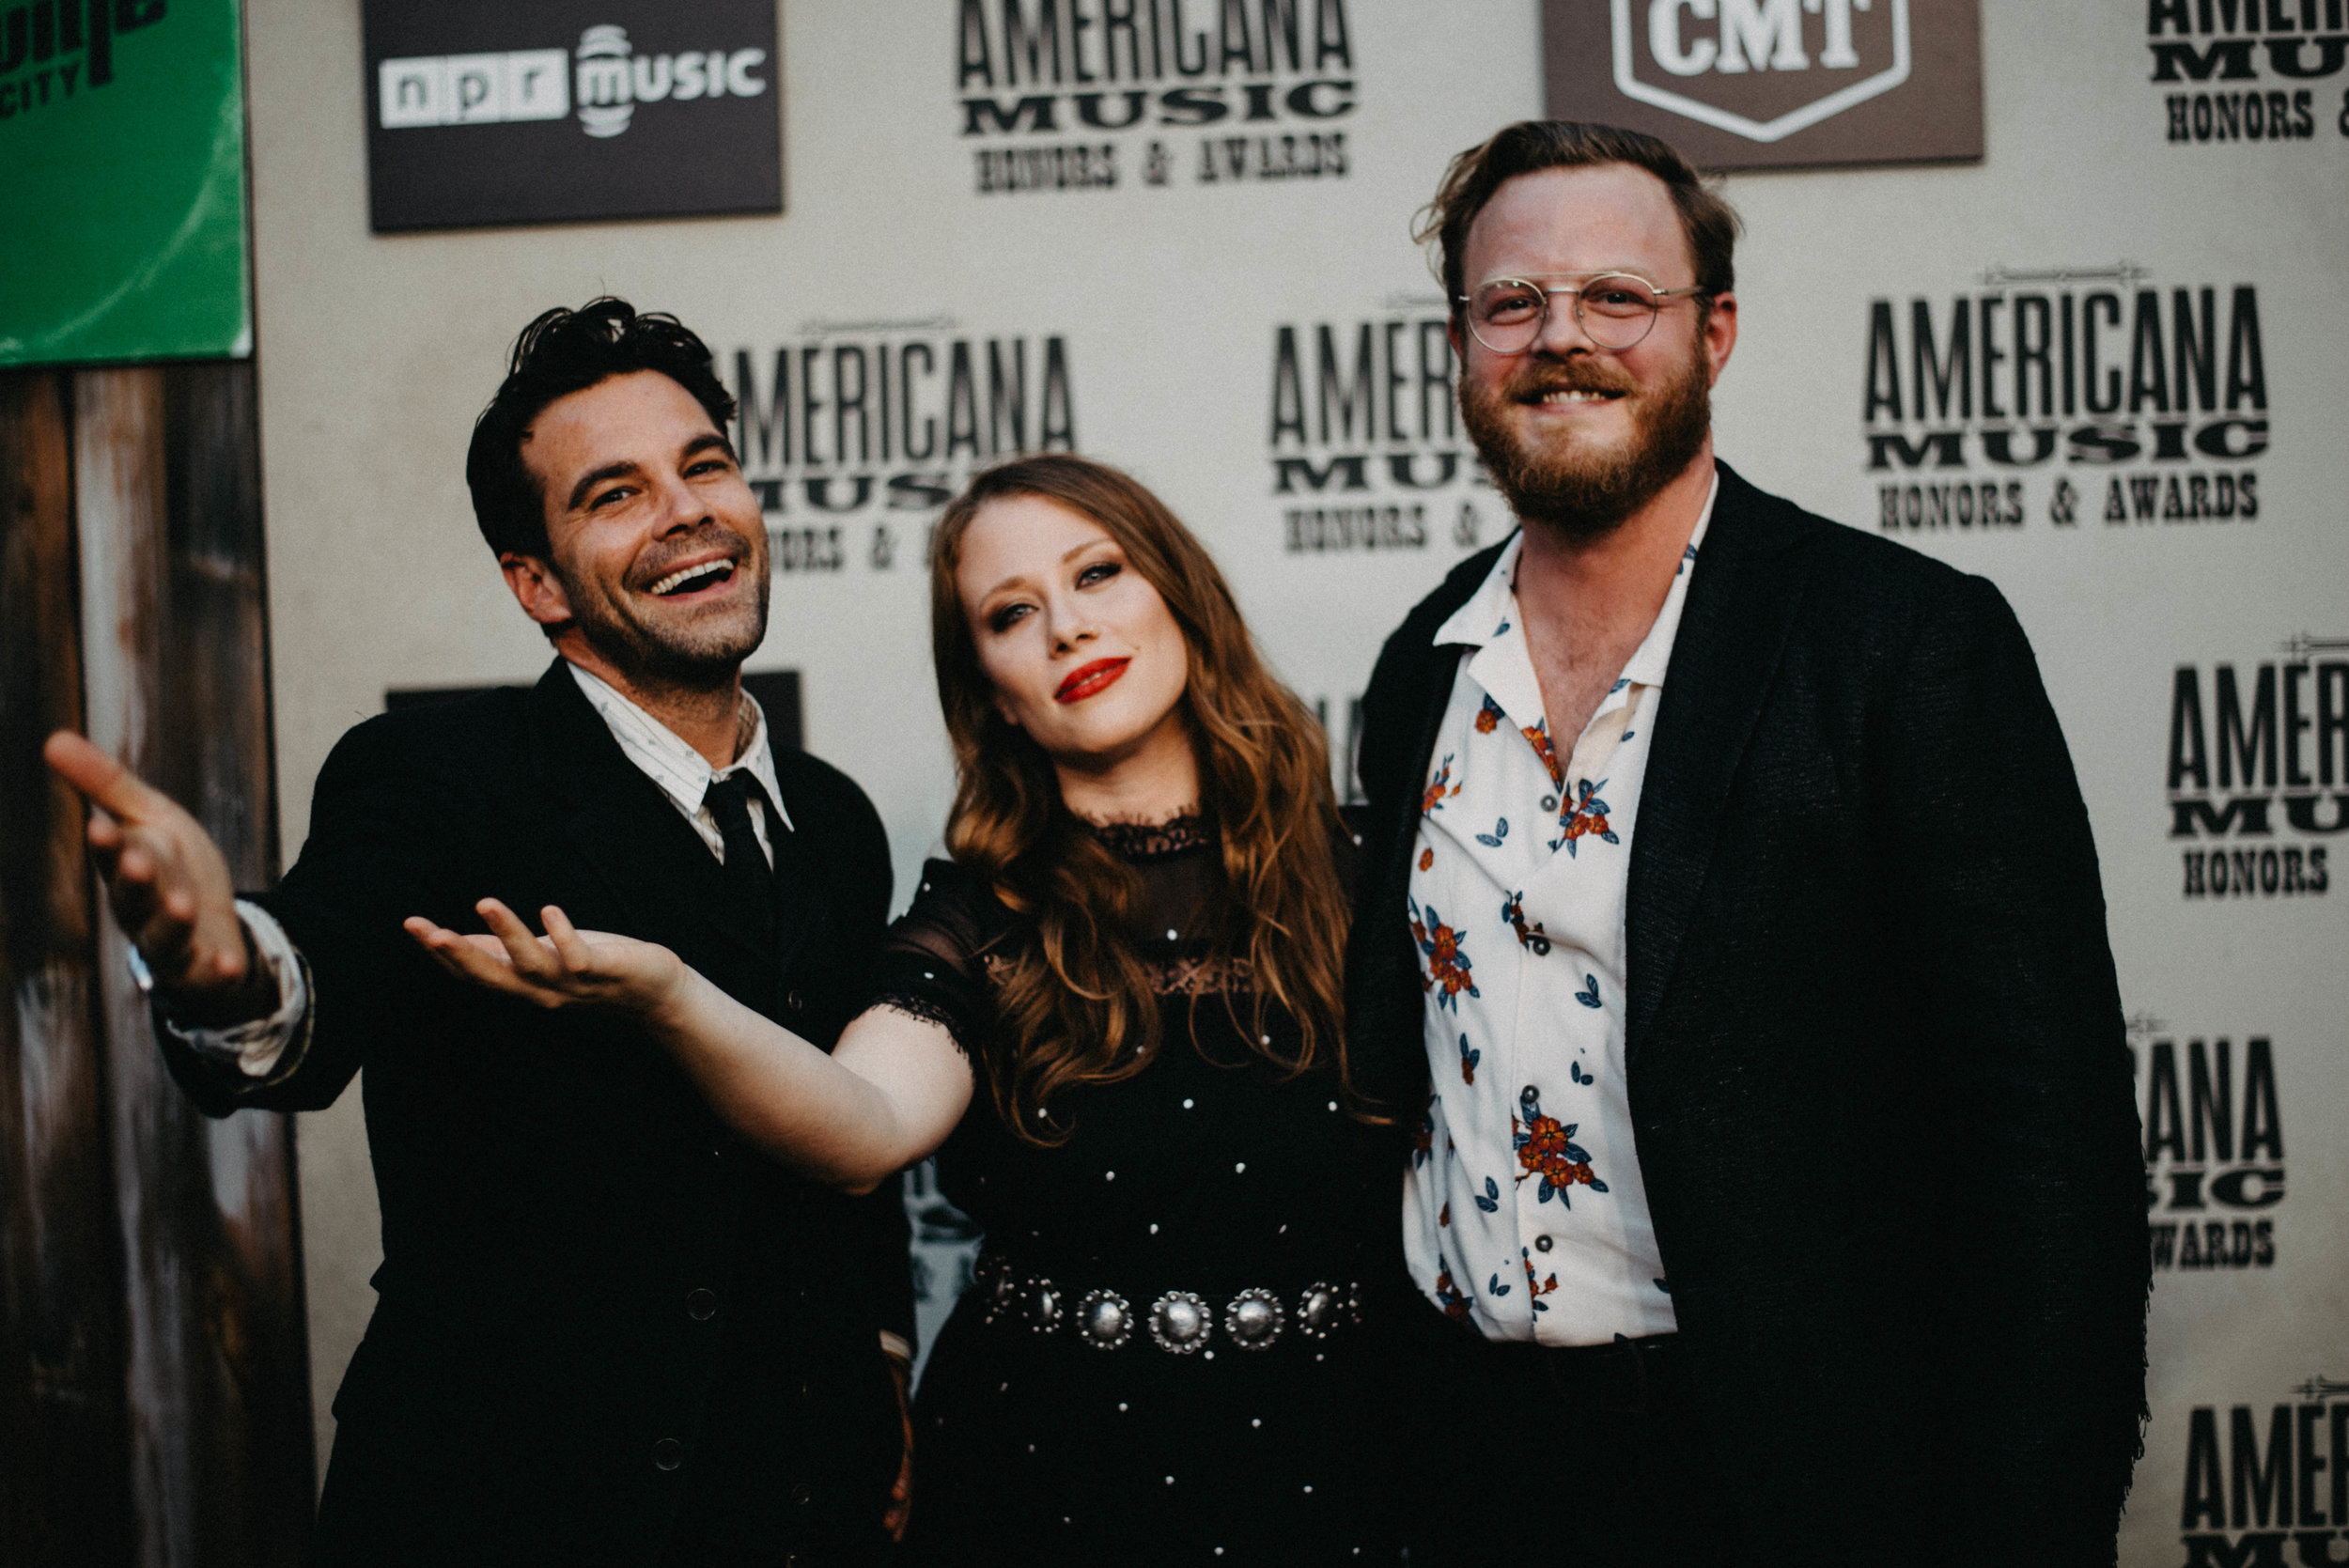 The Lone Bellow. Zach Williams, Kanene Donehey Pipkin, & Brian Elmquist. Hair, Makeup & grooming by Nicole Schimel. Styled by Beth HItchcock.